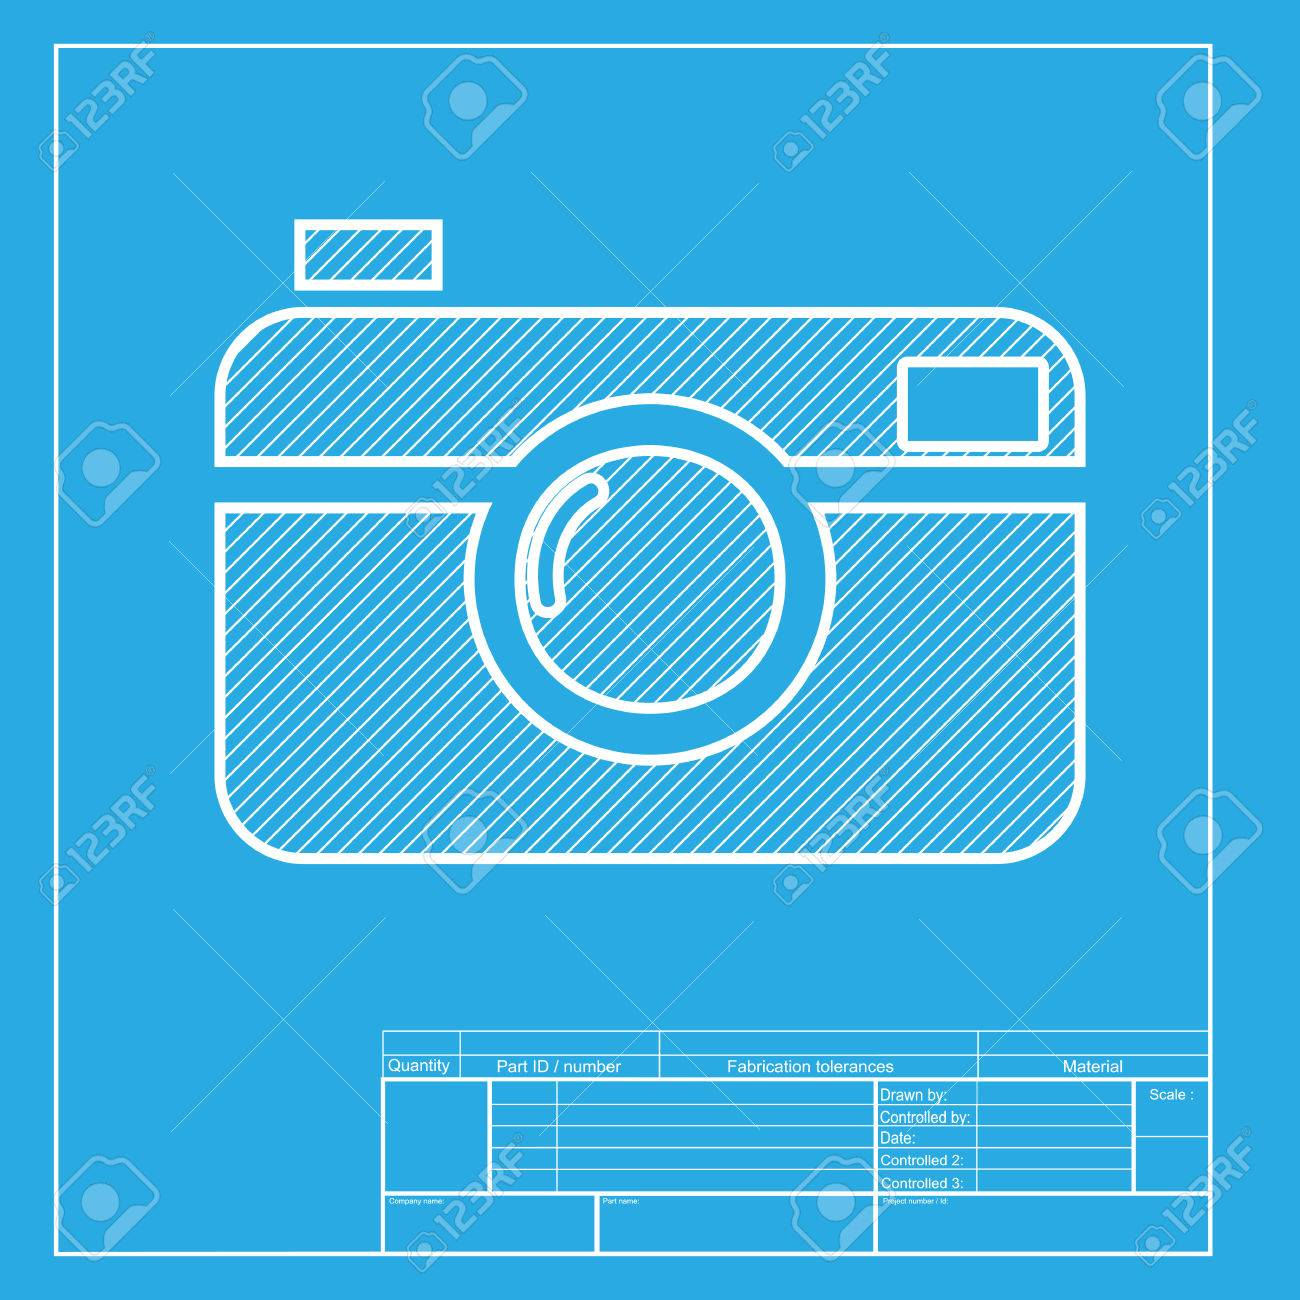 Digital photo camera sign white section of icon on blueprint digital photo camera sign white section of icon on blueprint template stock vector malvernweather Image collections